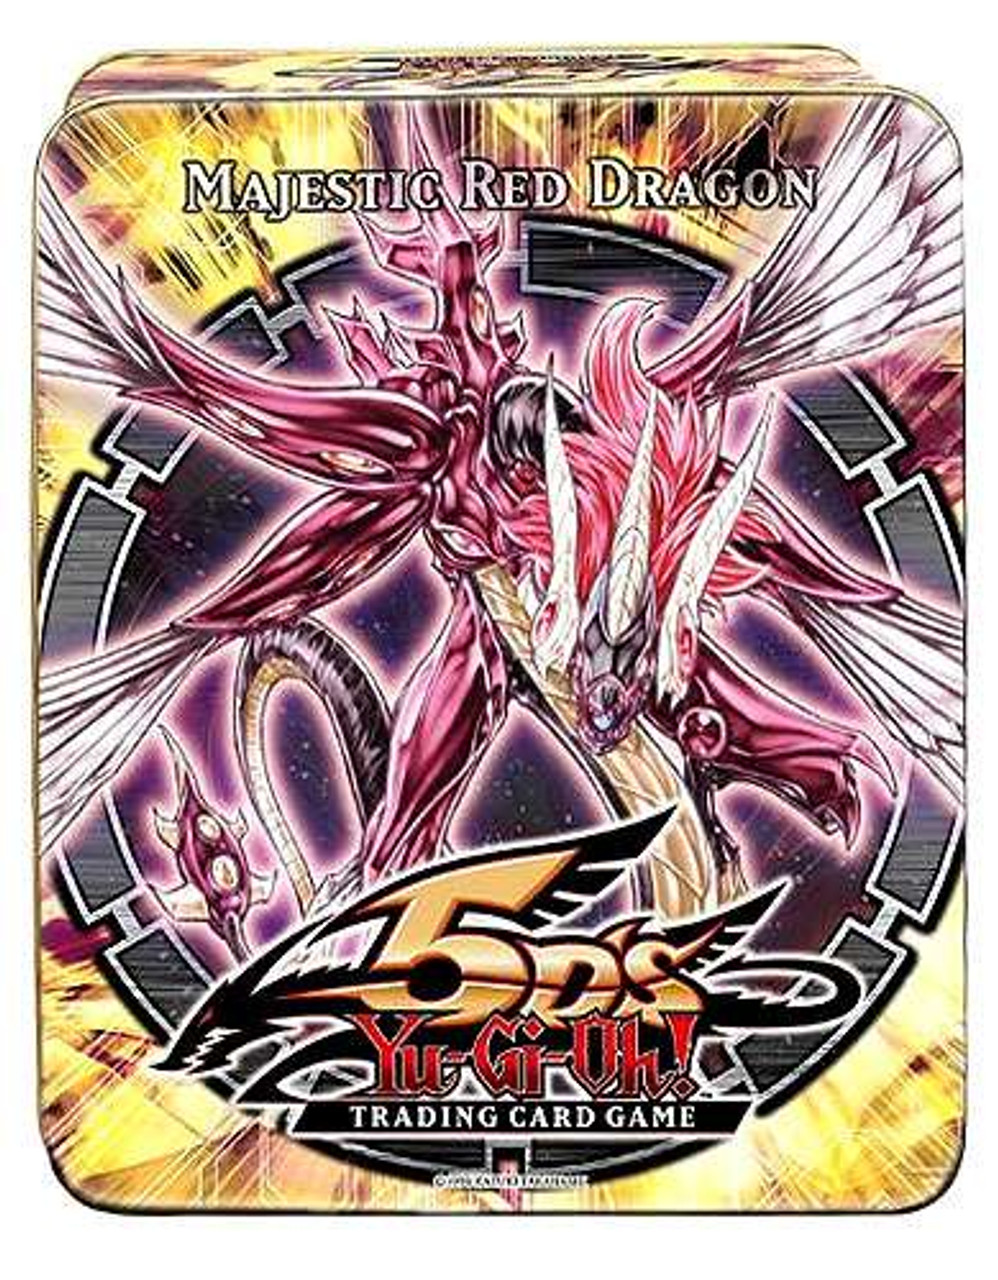 YuGiOh 5D's 2010 Collector Tin Majestic Red Dragon Collector Tin [Sealed]